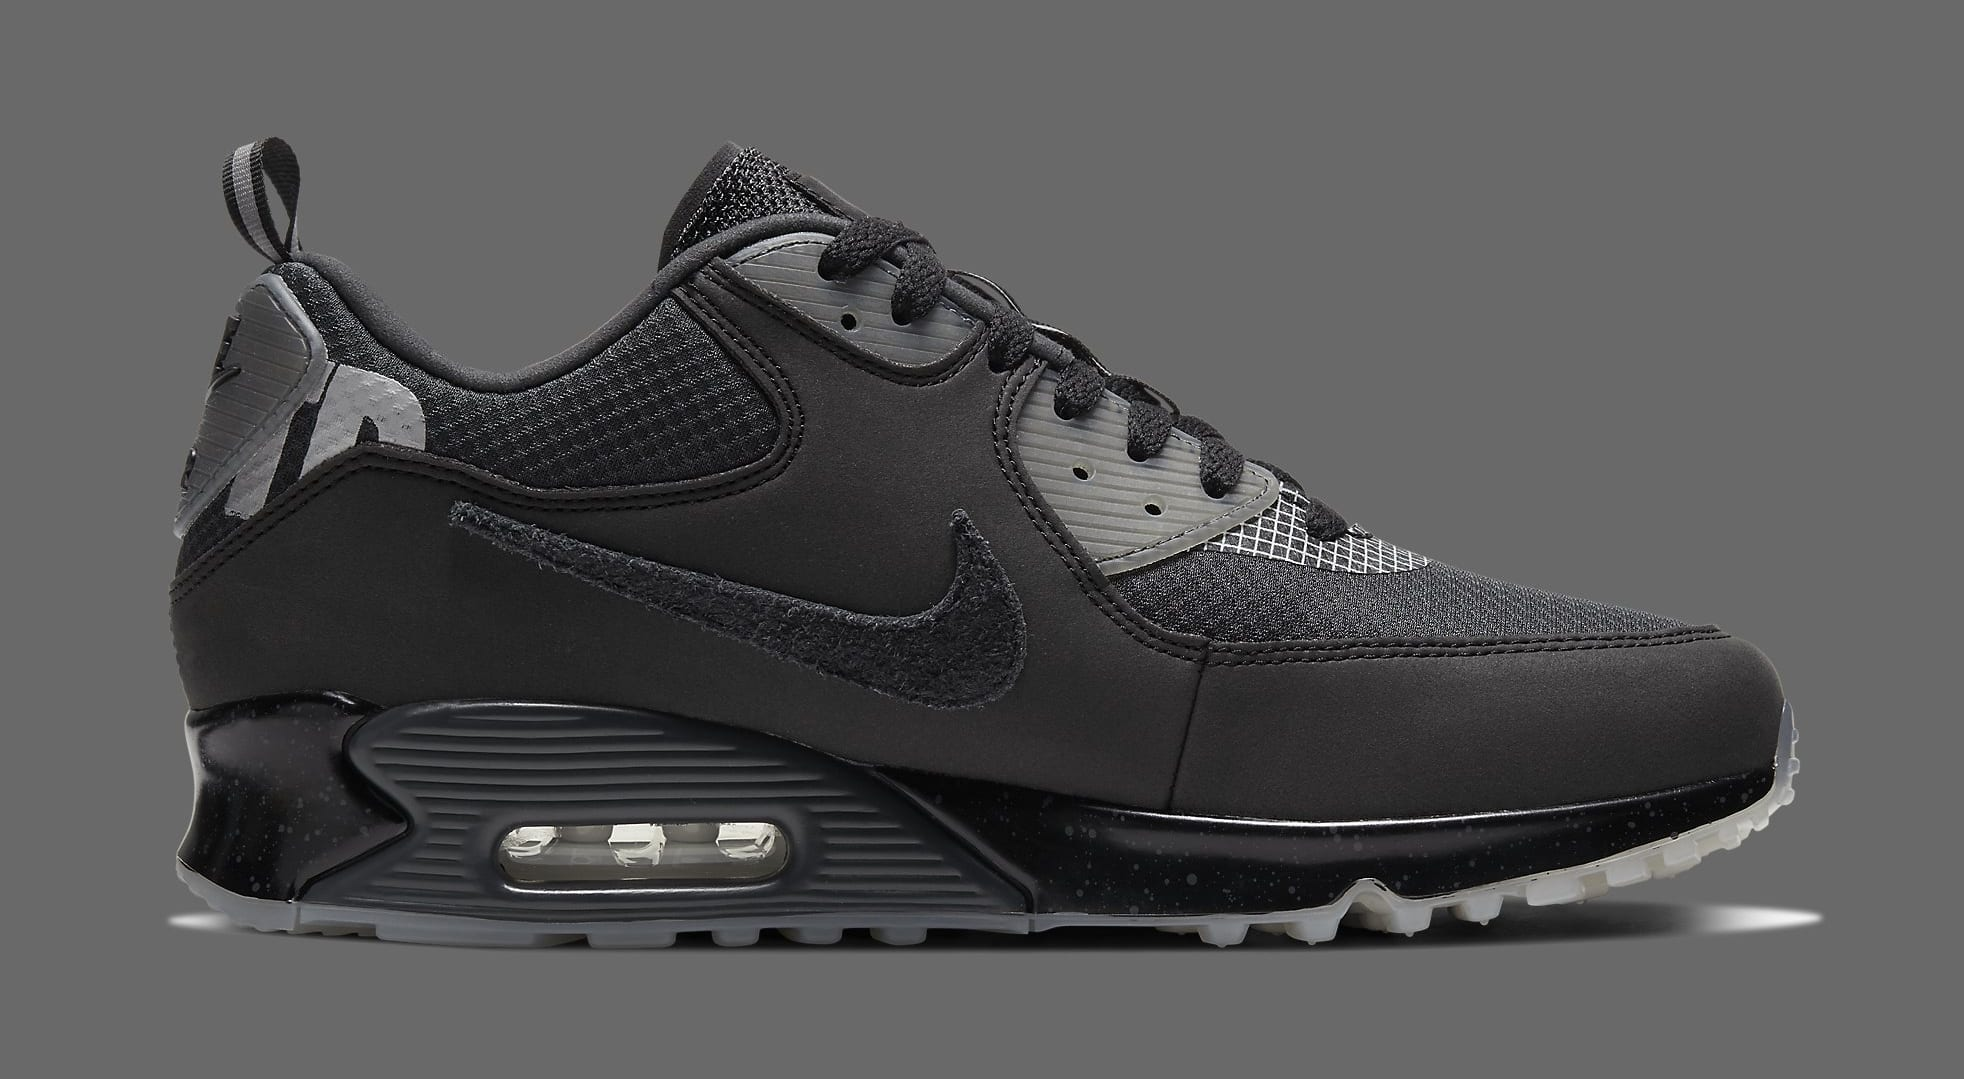 undefeated-nike-air-max-90-black-cq2289-002-medial